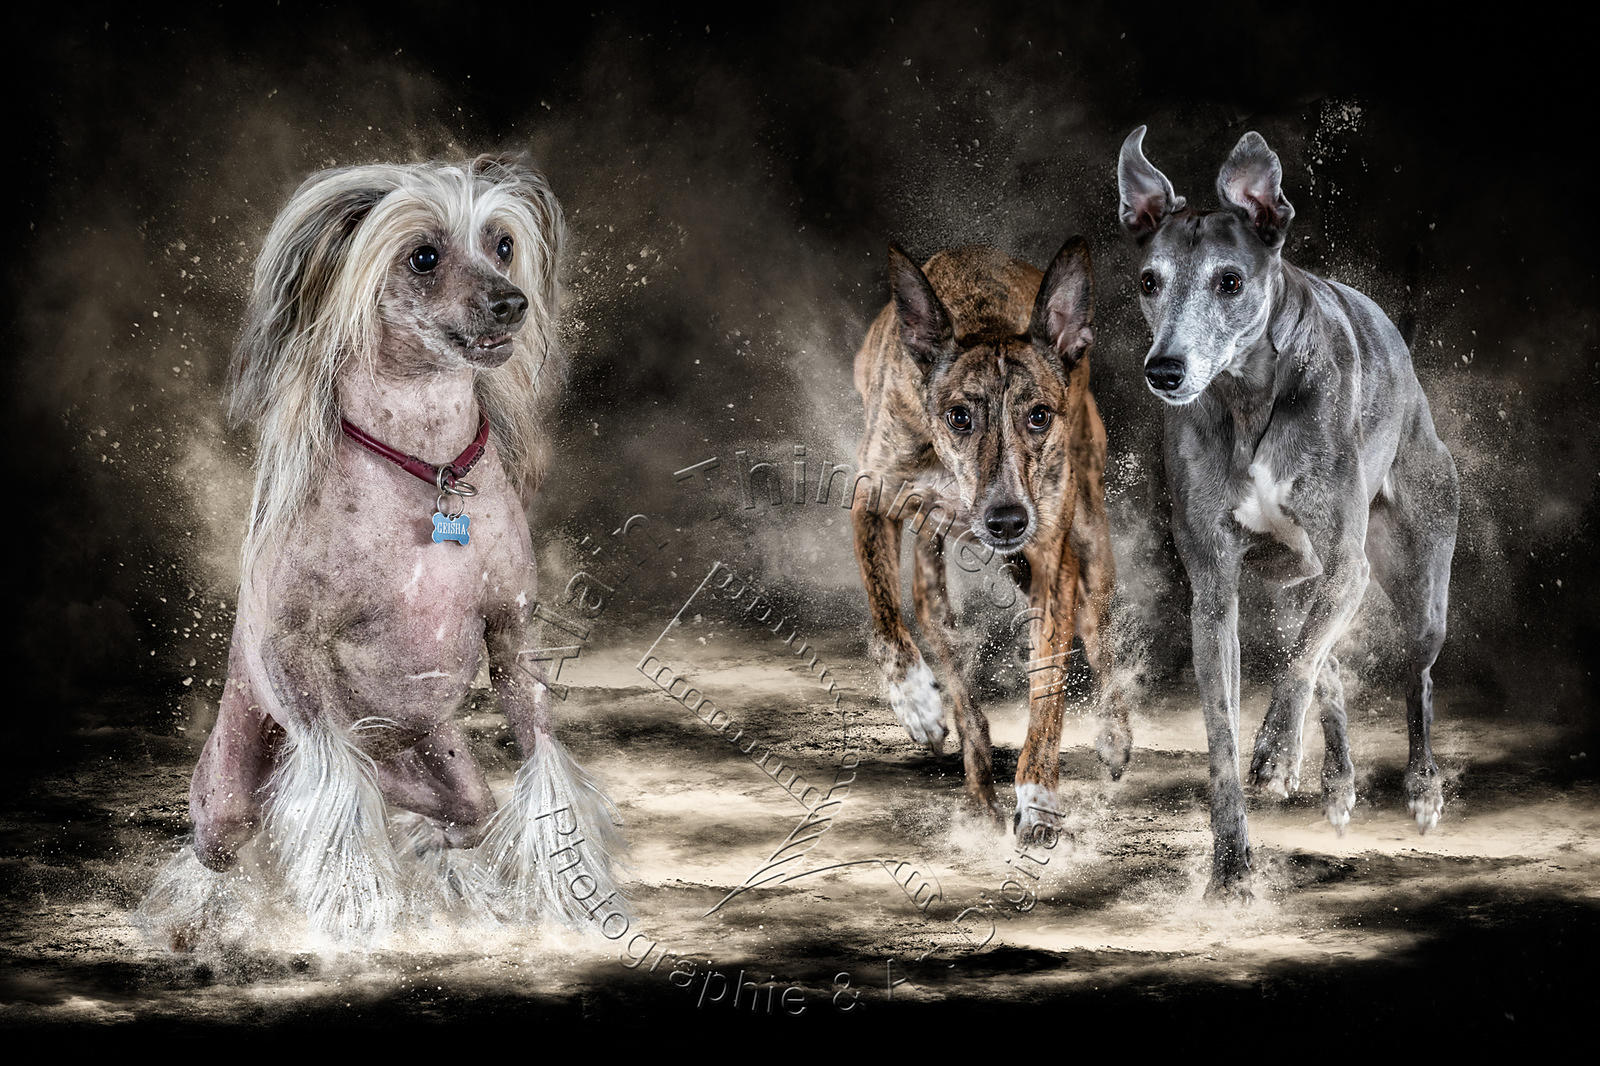 Art-Digital-Alain-Thimmmesch-Chien-766